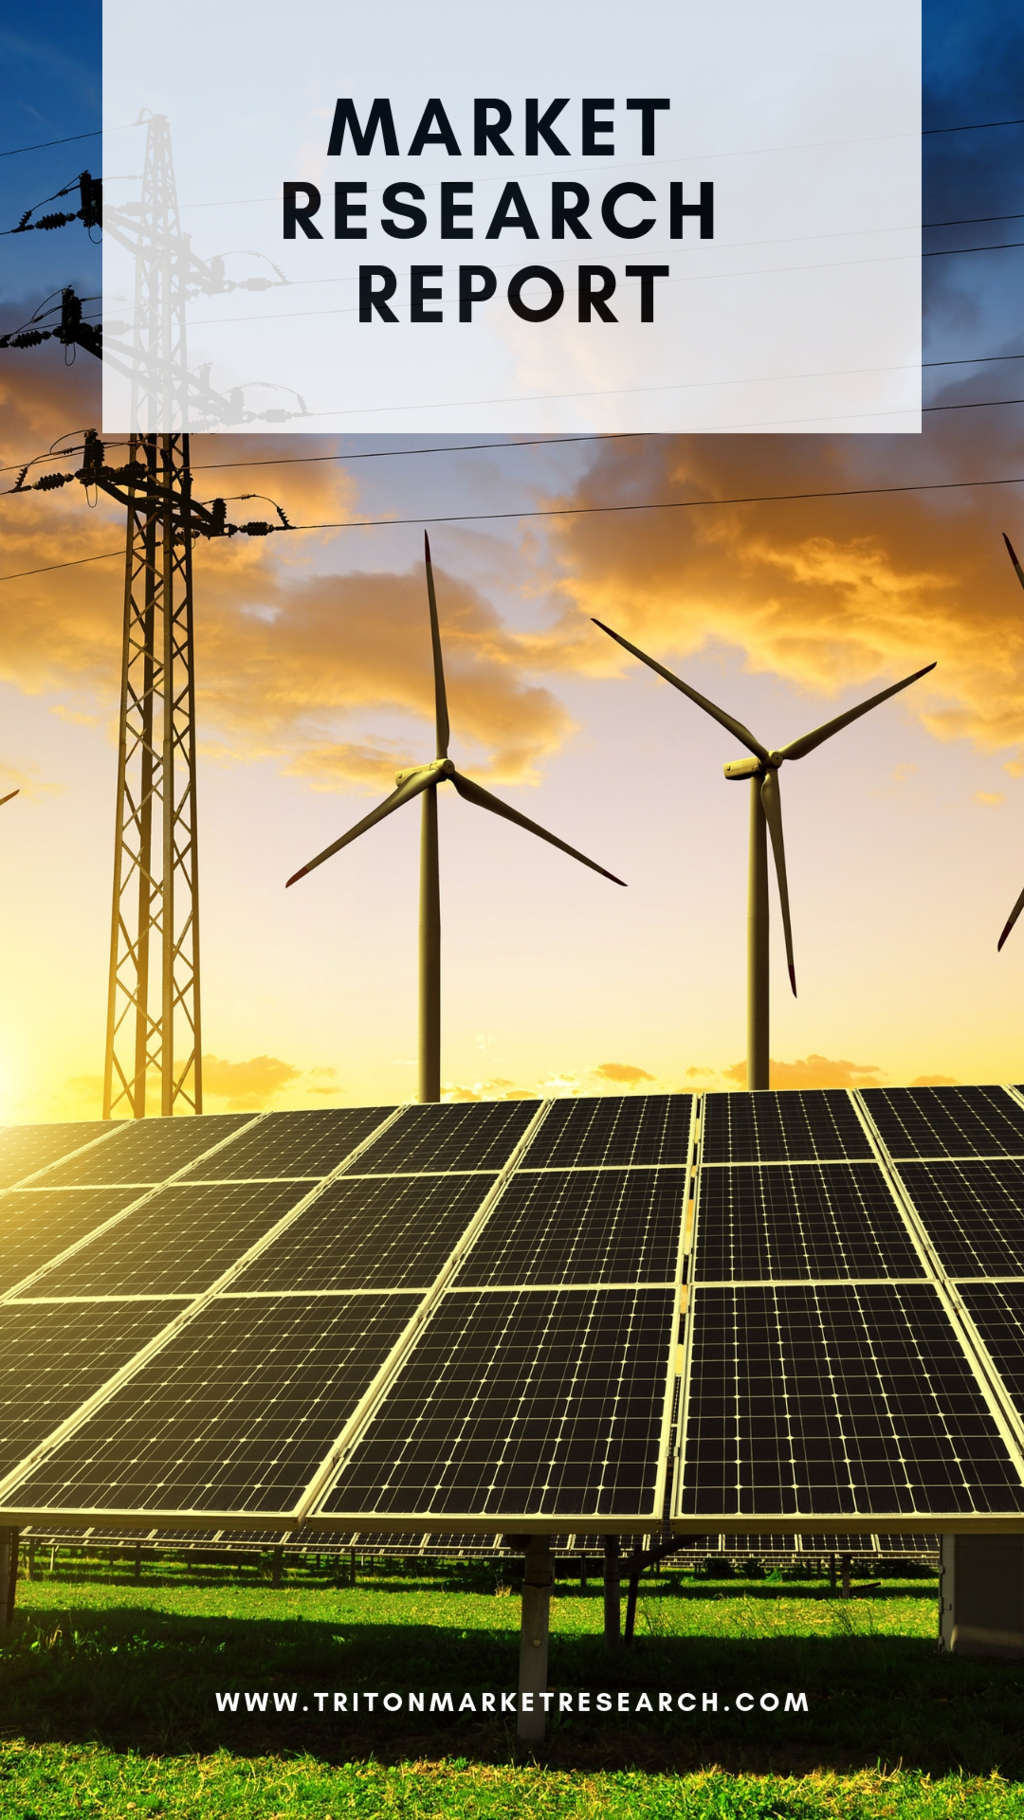 ASIA-PACIFIC VIRTUAL POWER PLANT MARKET 2019-2028